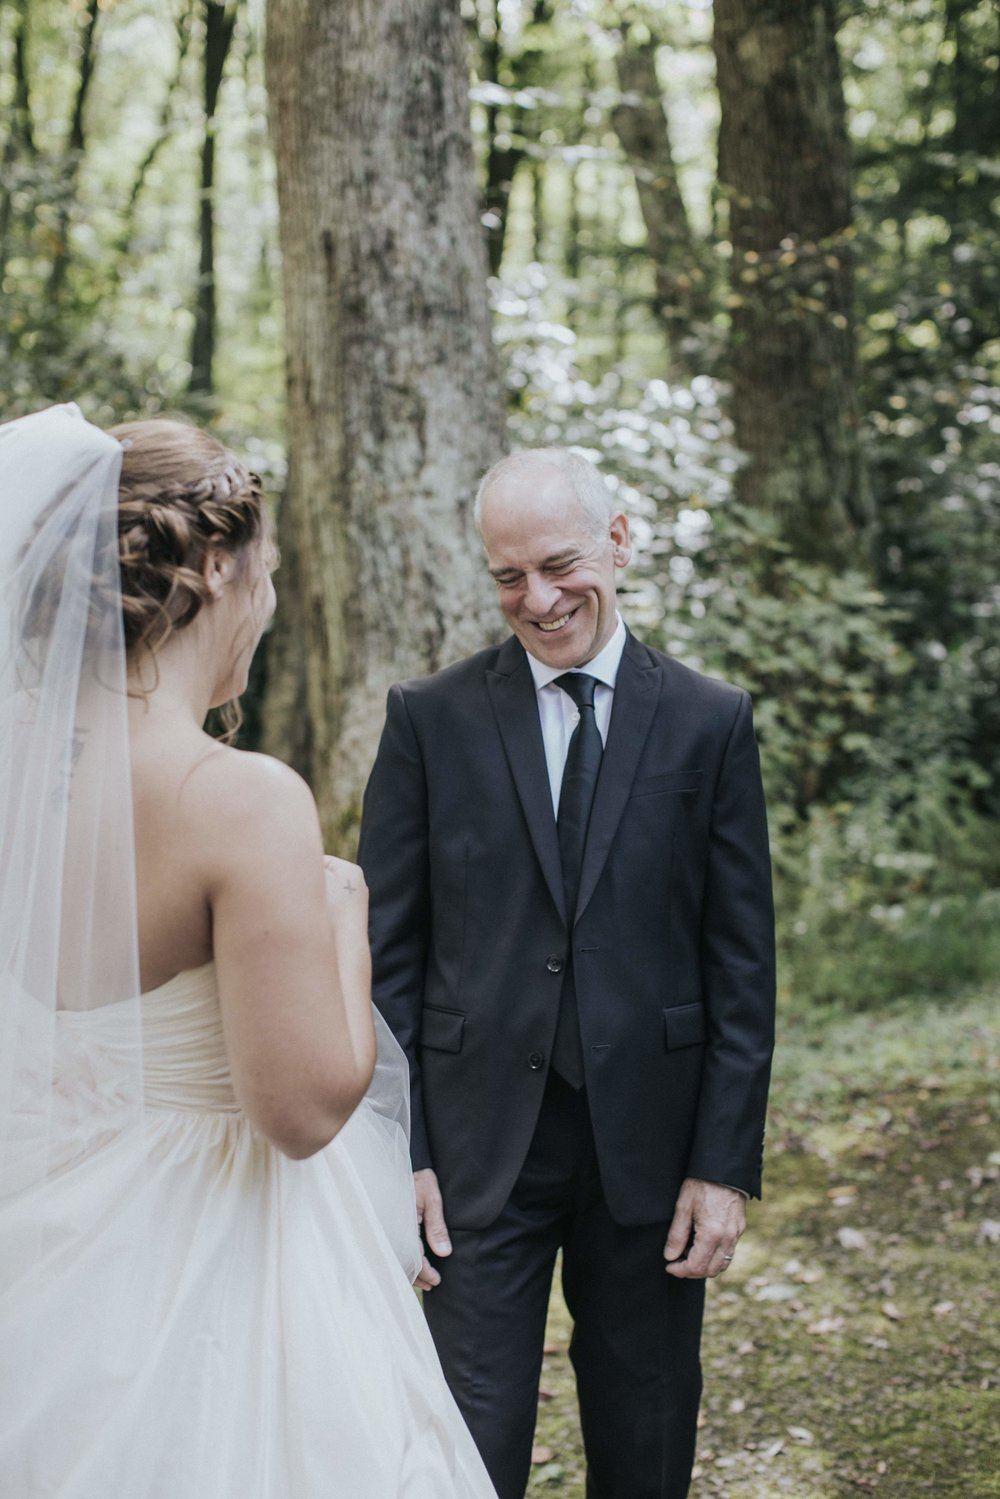 Bride shares a first look with her father for rustic wedding in Farmington, PA planned by Exhale Events. Find more wedding inspiration at exhale-events.com!